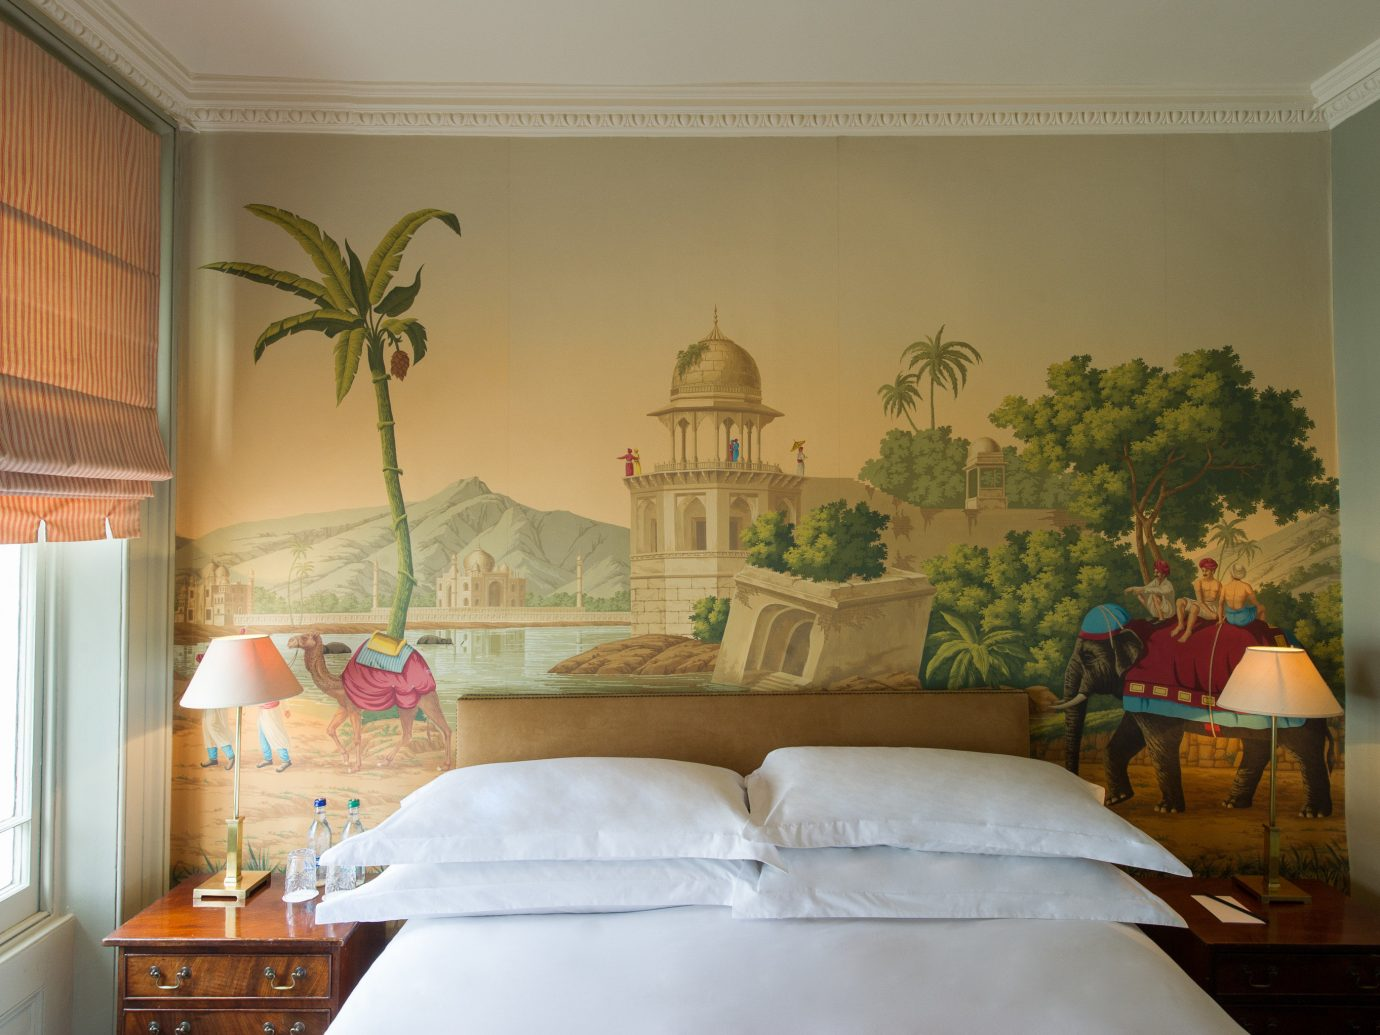 Budget Hotels London indoor wall room Bedroom Living property living room interior design home mural estate ceiling furniture window covering bed cottage decorated